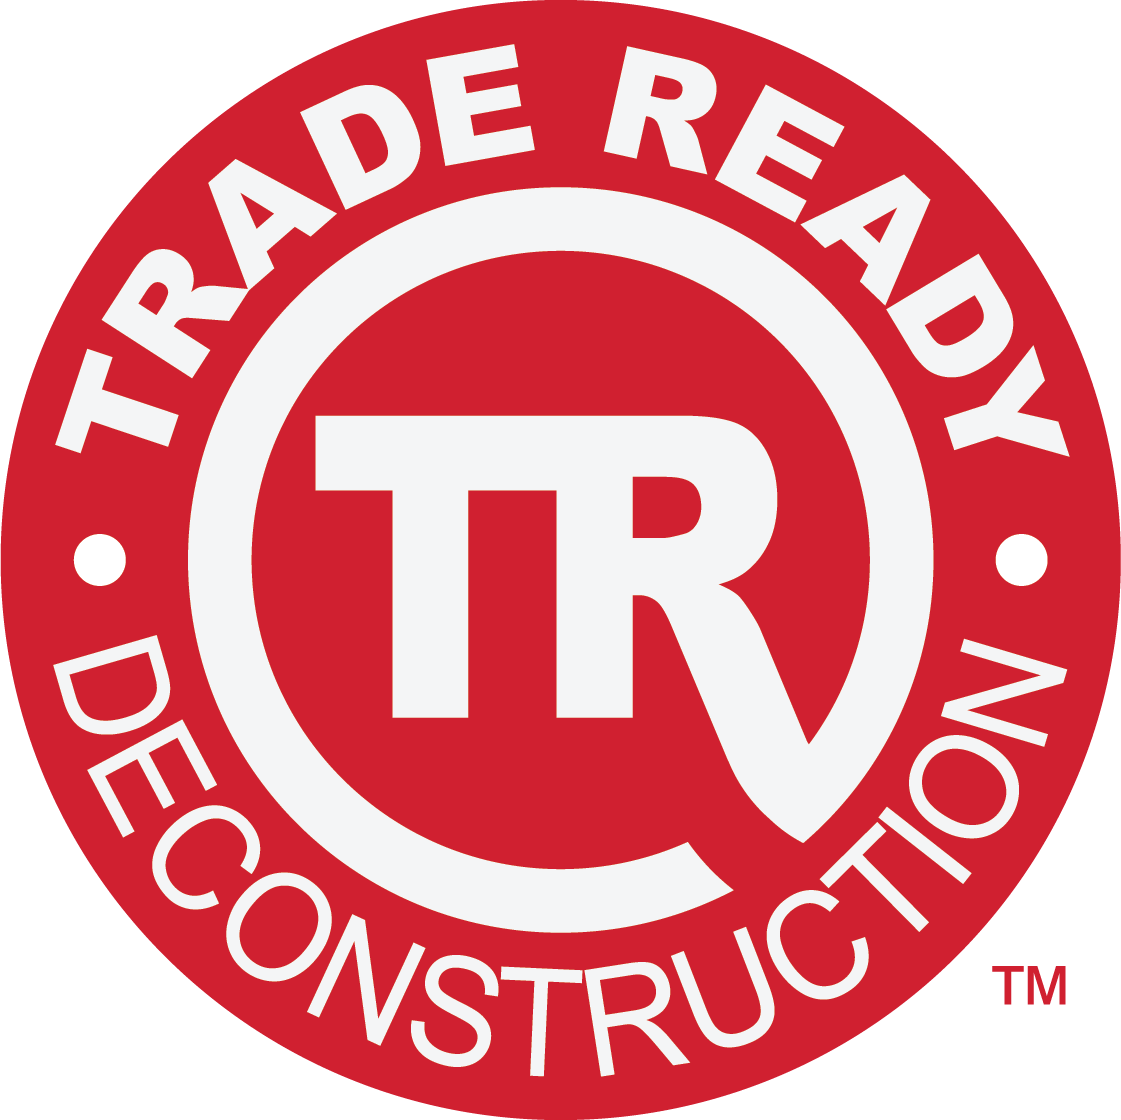 TradeReady - Bold - 300dpi.png